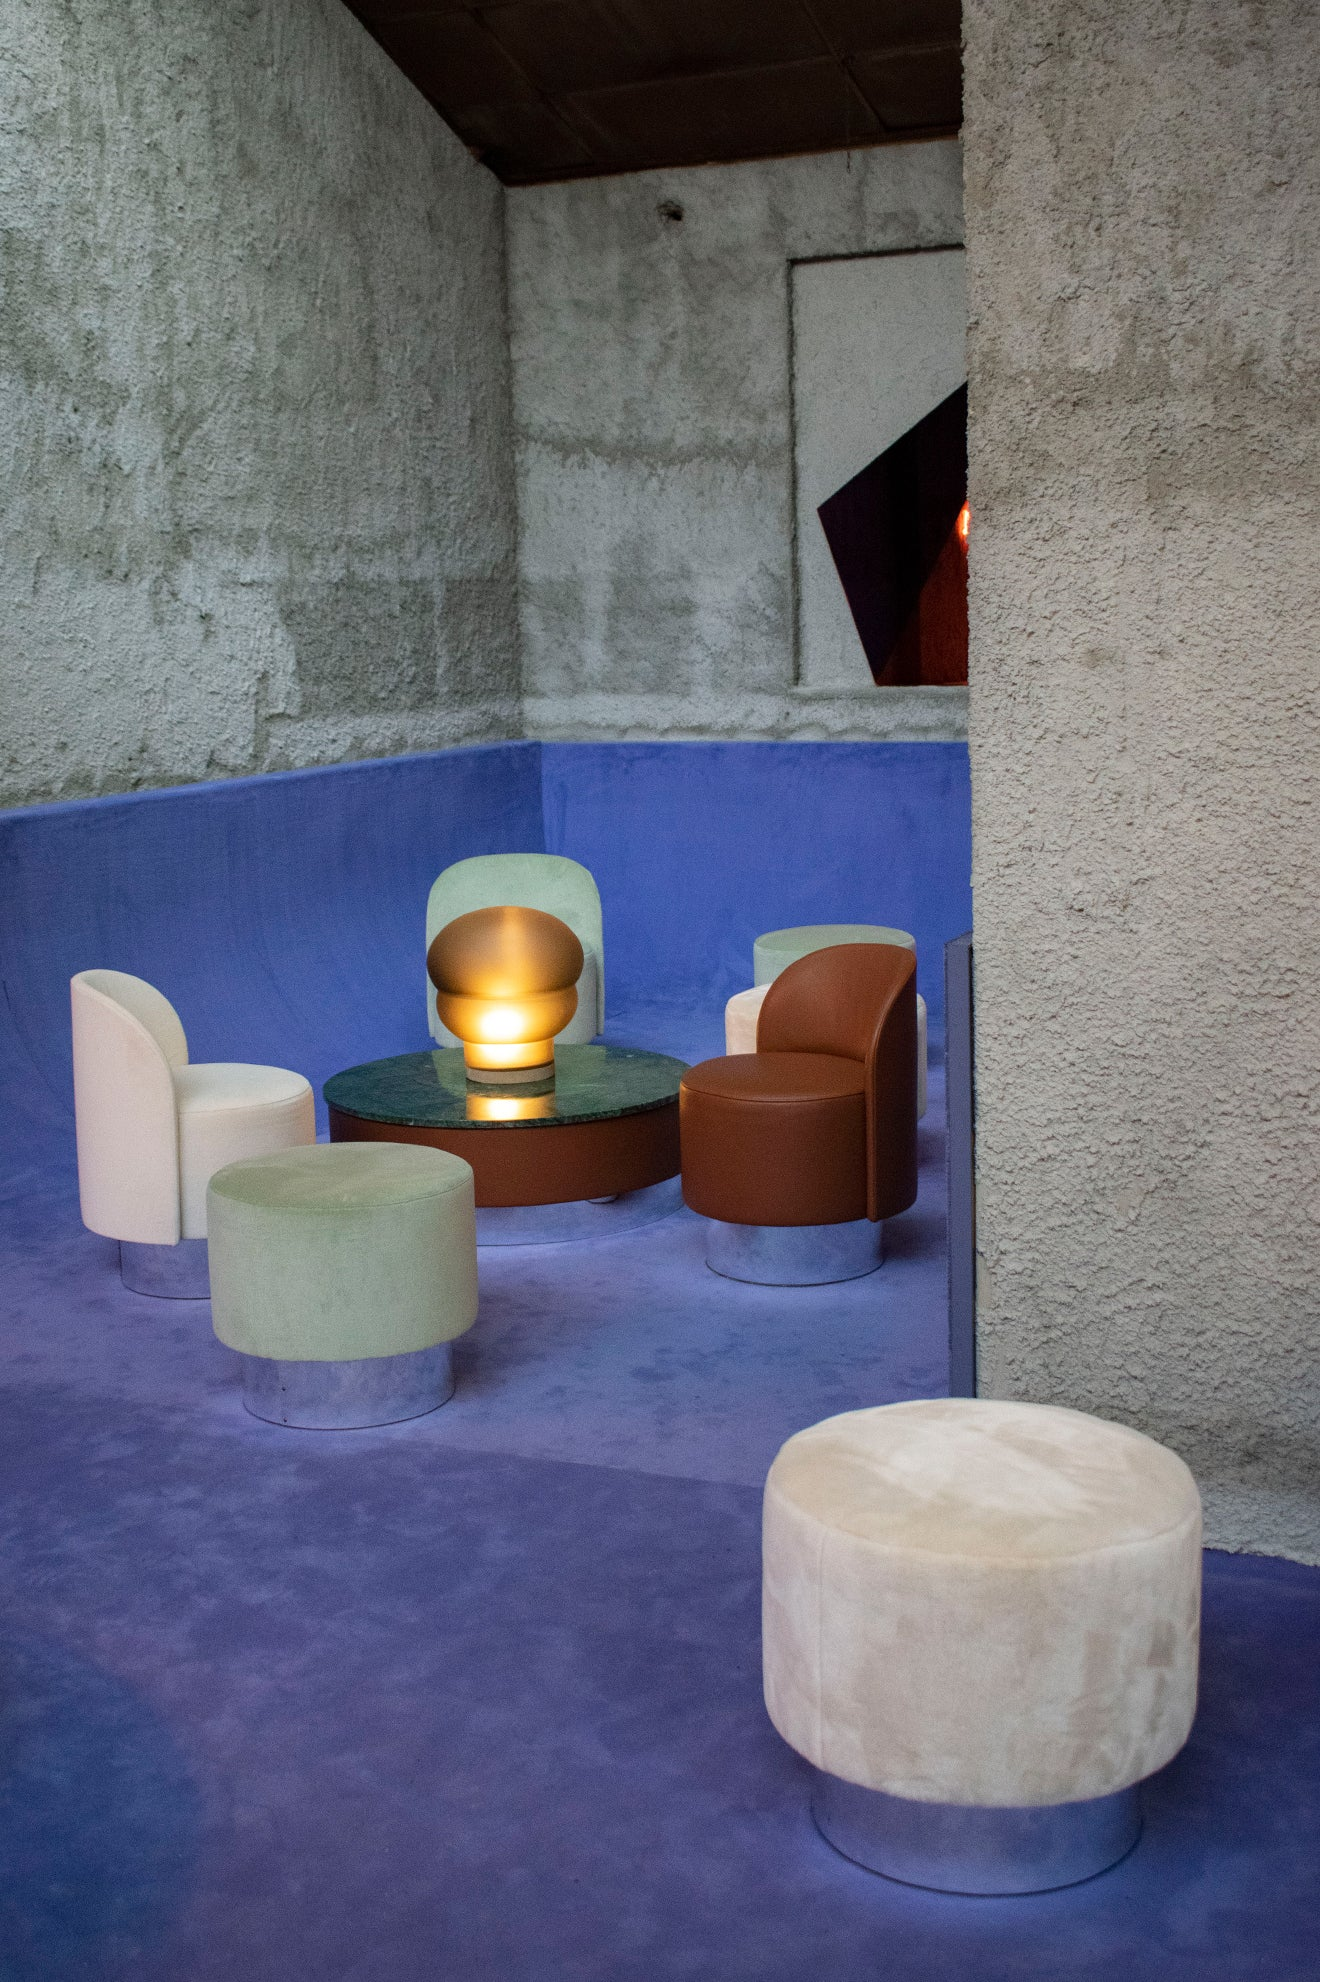 Studiopepe exhibits Les Arcanistes during Milan Design Week